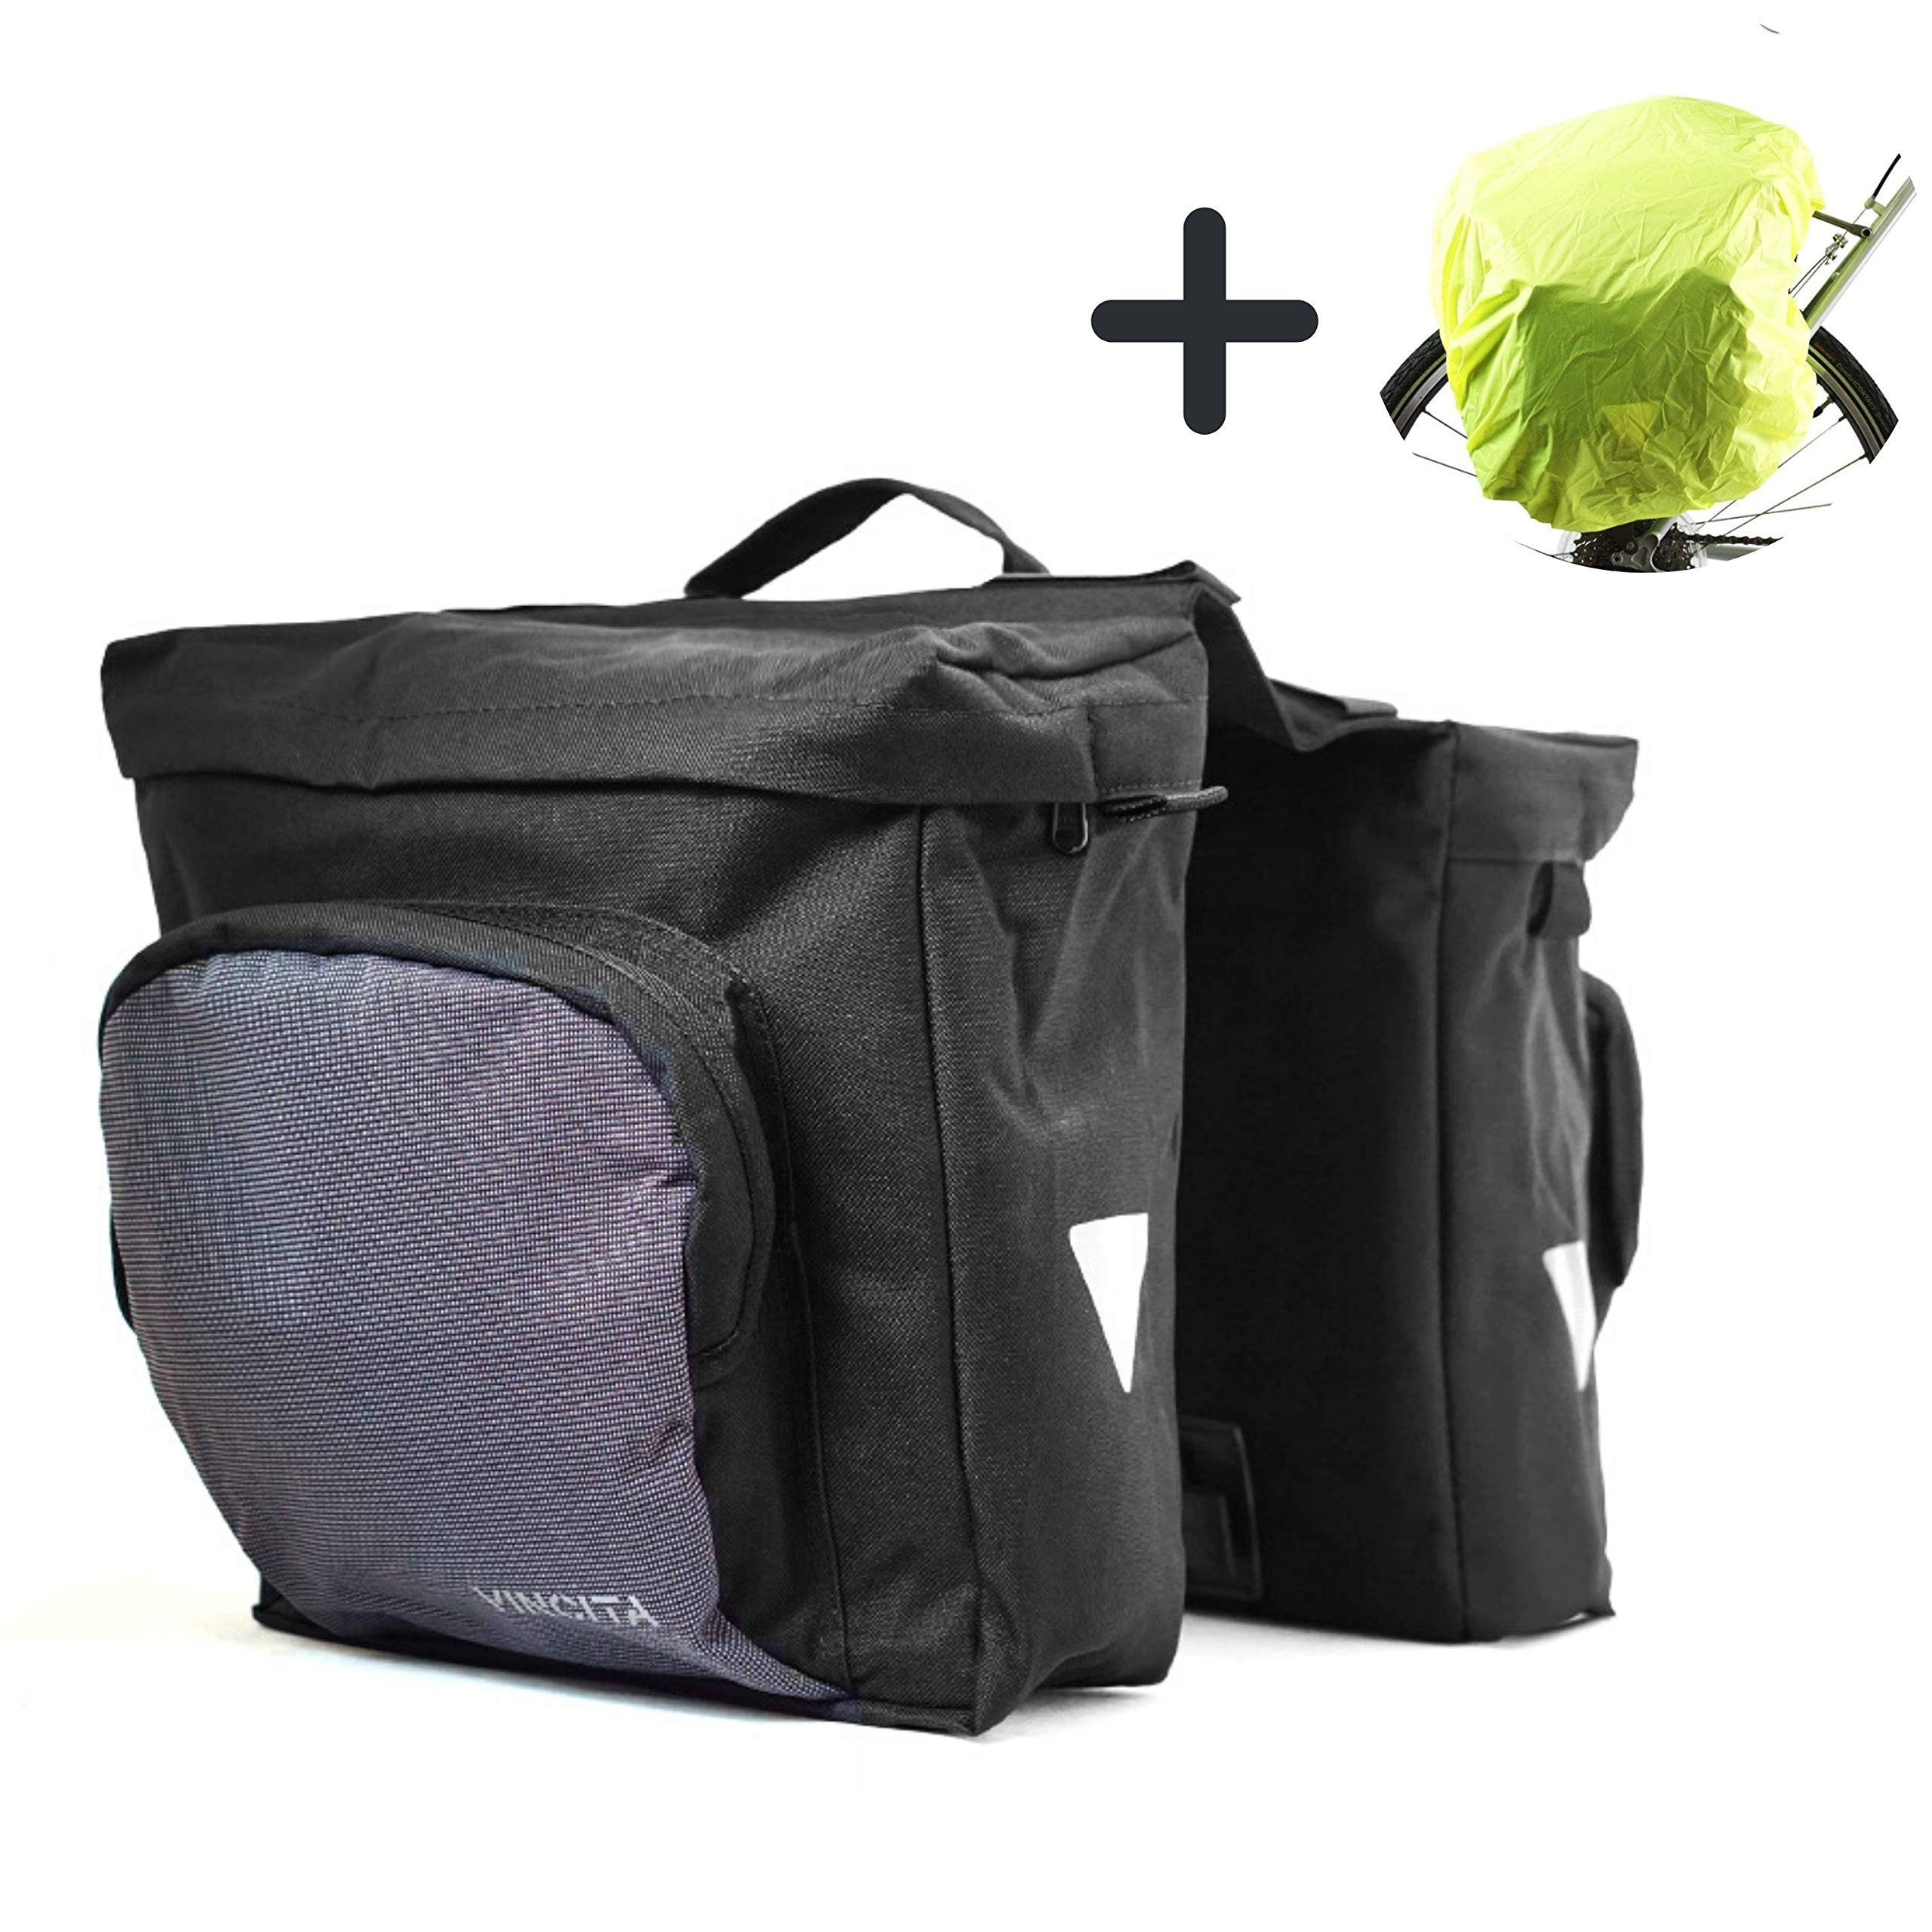 Vincita Double Pannier Water-Resistant Side Bags Large Compartments Quick Release Lever Lock Clip-on with Rain Cover for Bicycle Cargo Rear Rack Saddle Bag Shoulder Bag Pannier Rack Bicycle Bag Bike